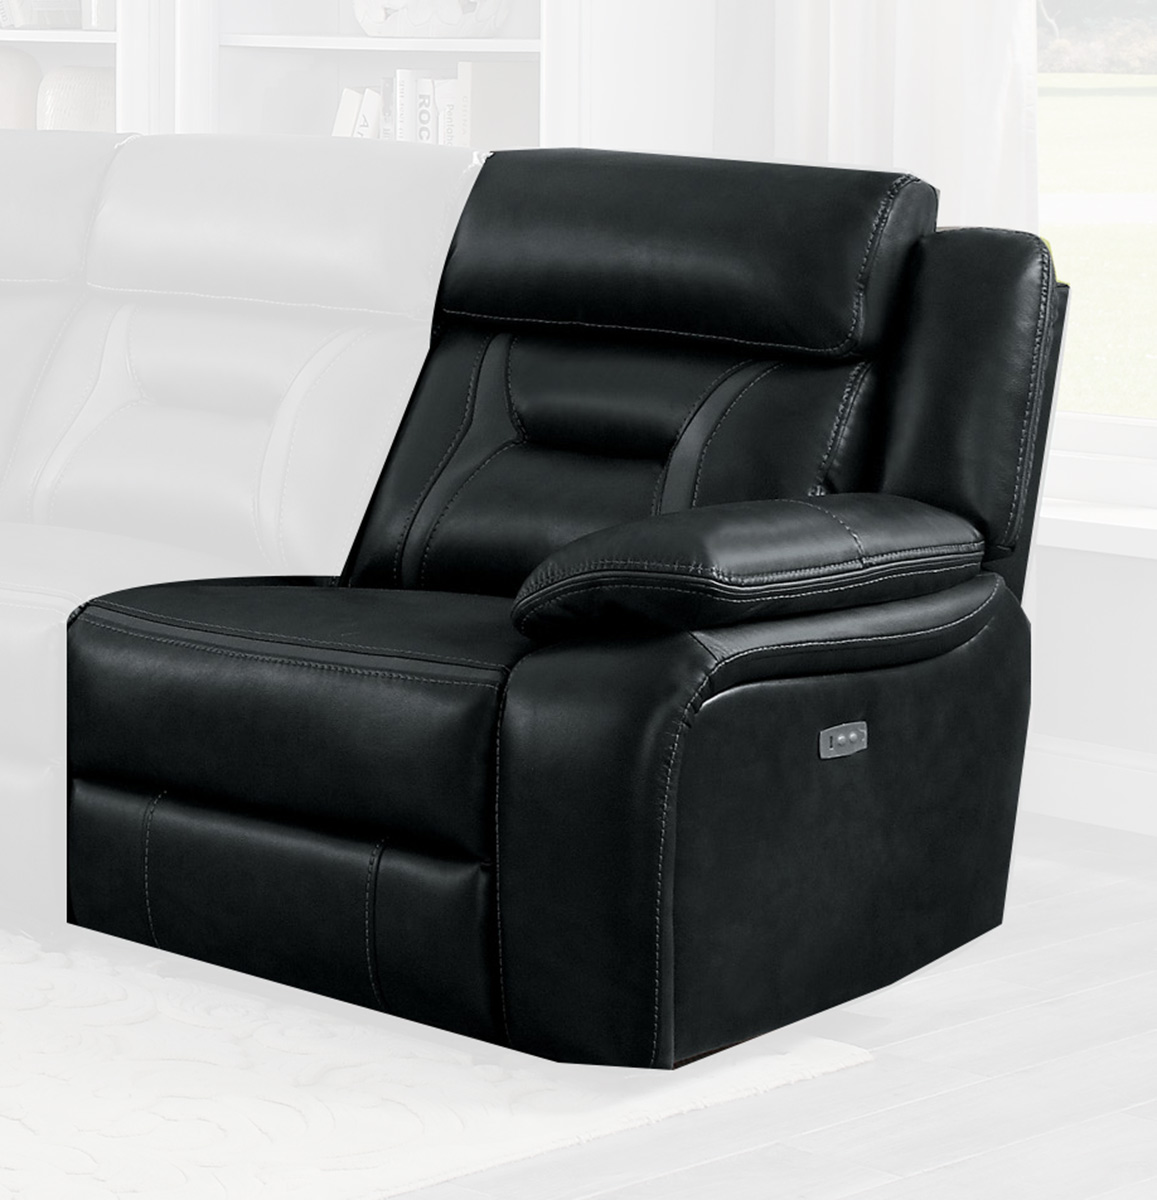 Homelegance Amite Power Right Side Reclining Chair - Dark Gray